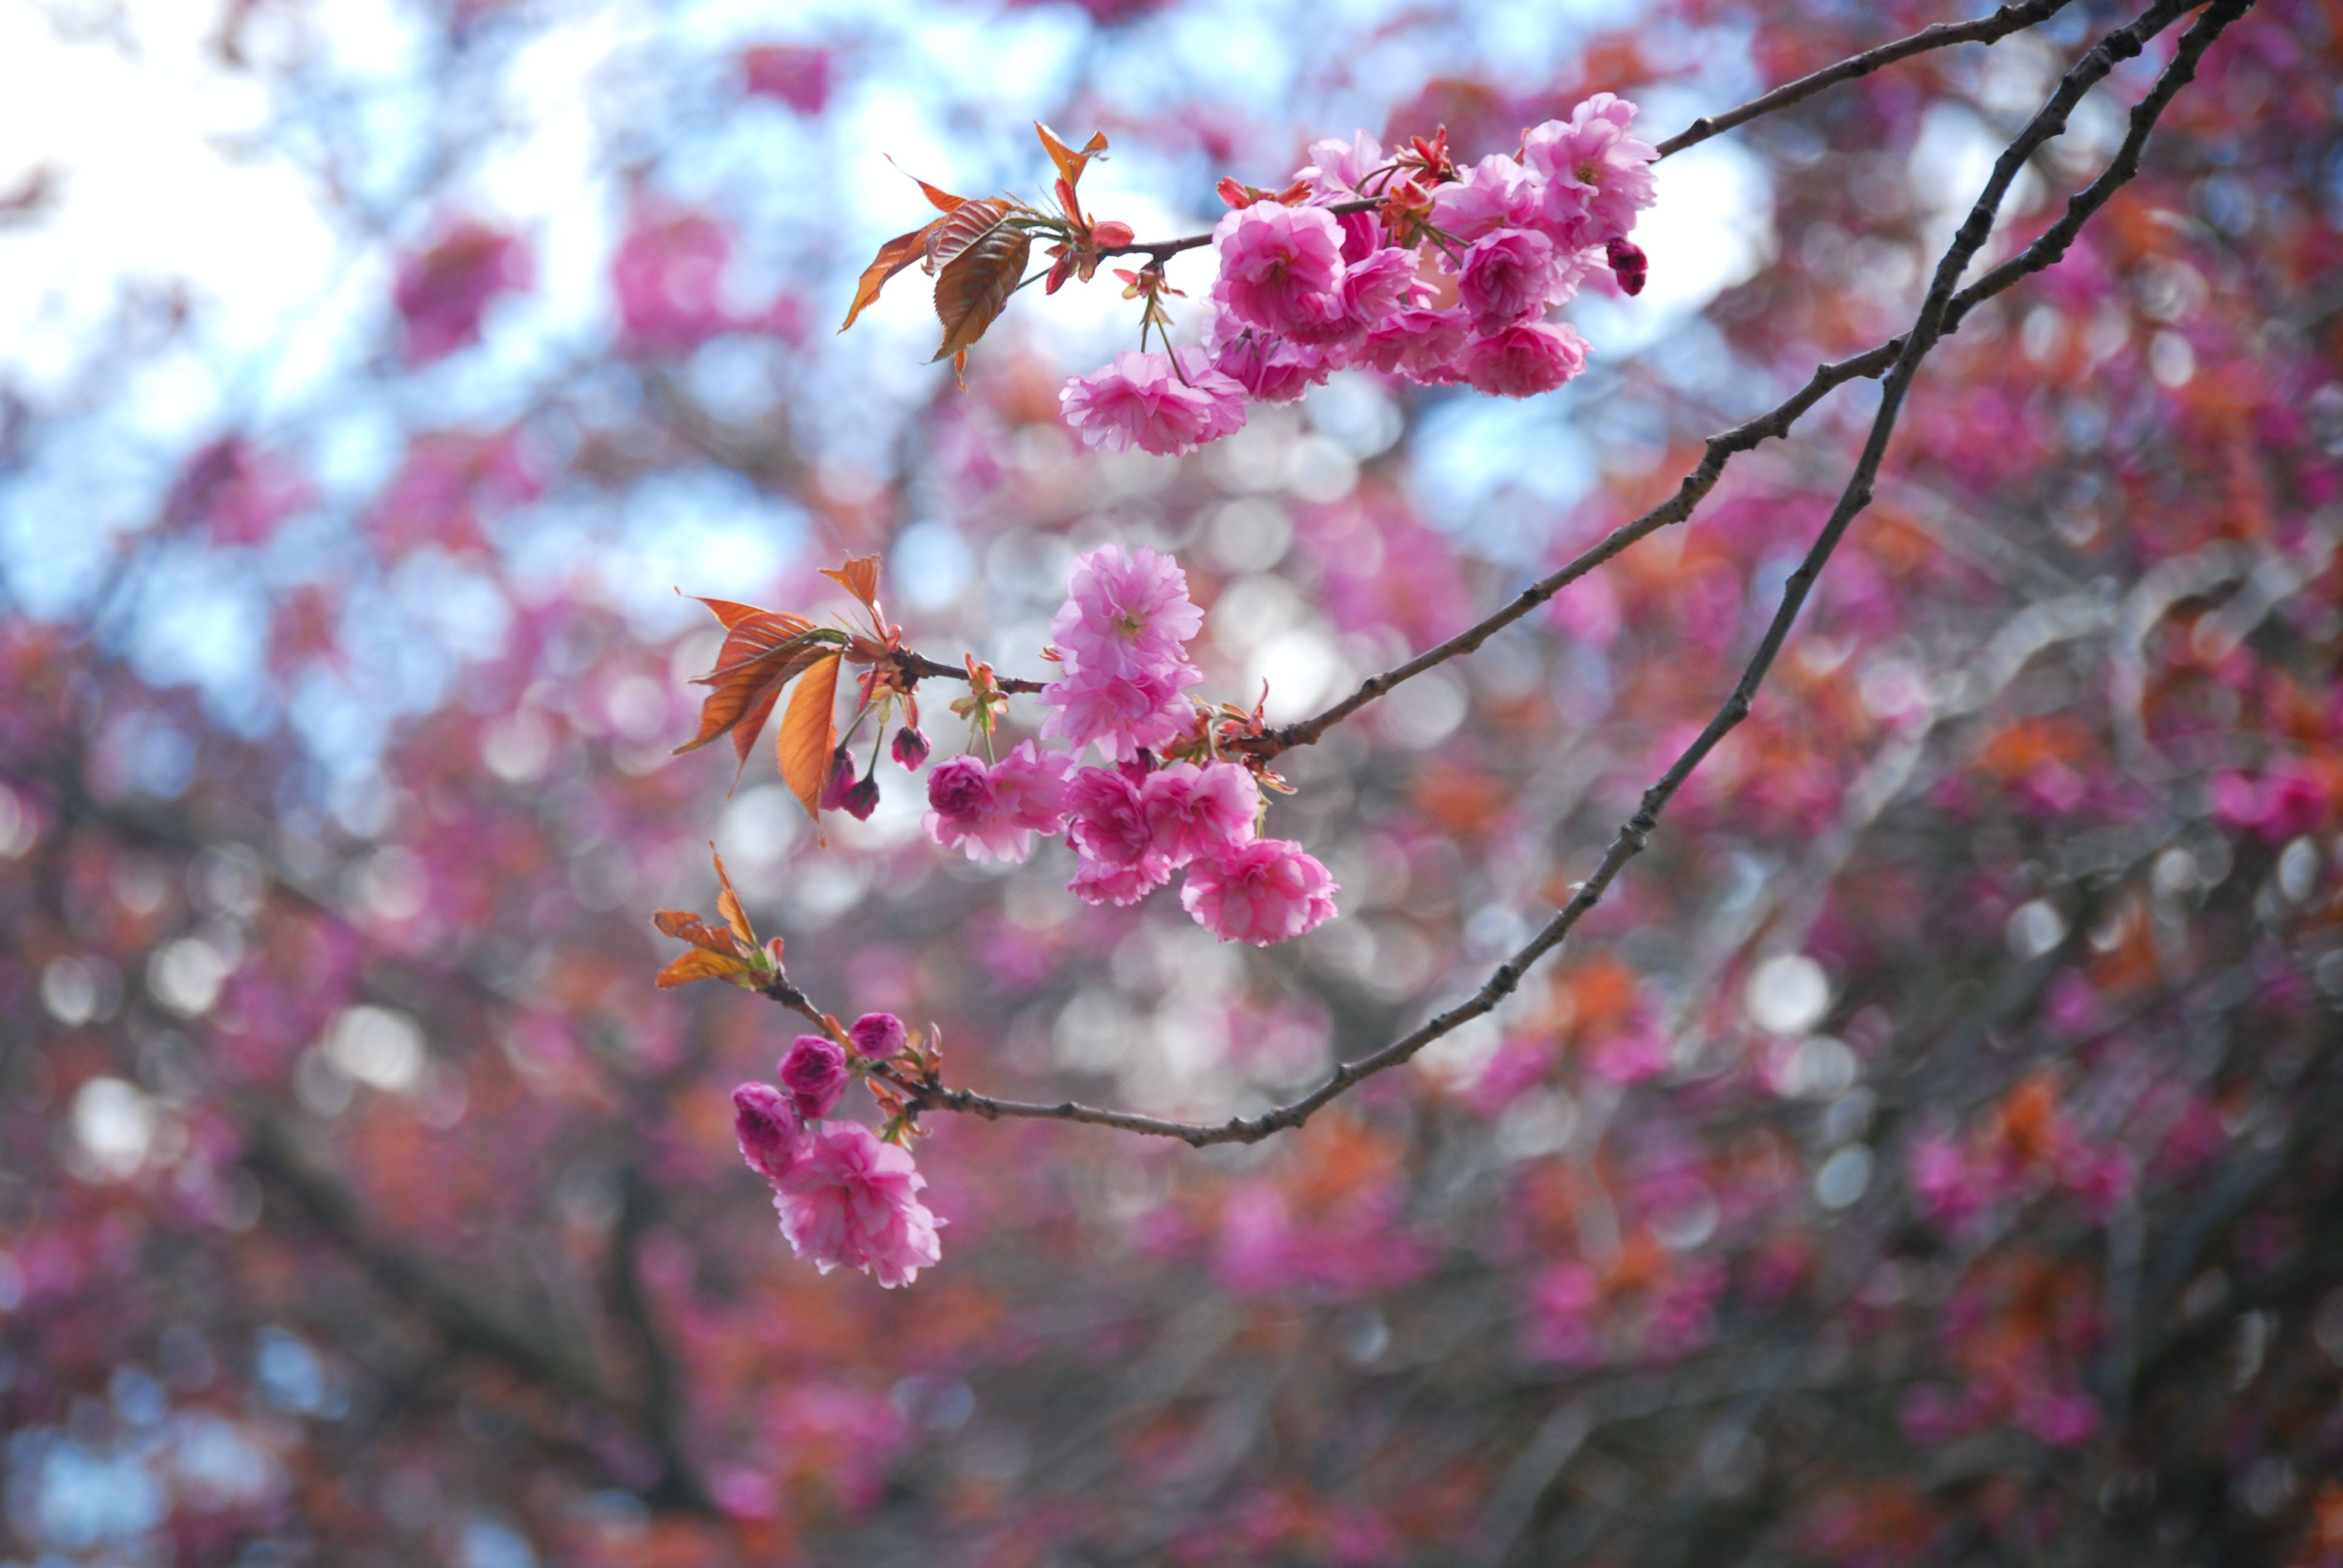 Free stock photo of blossom, blossom tree, blurred background, cherry blossom